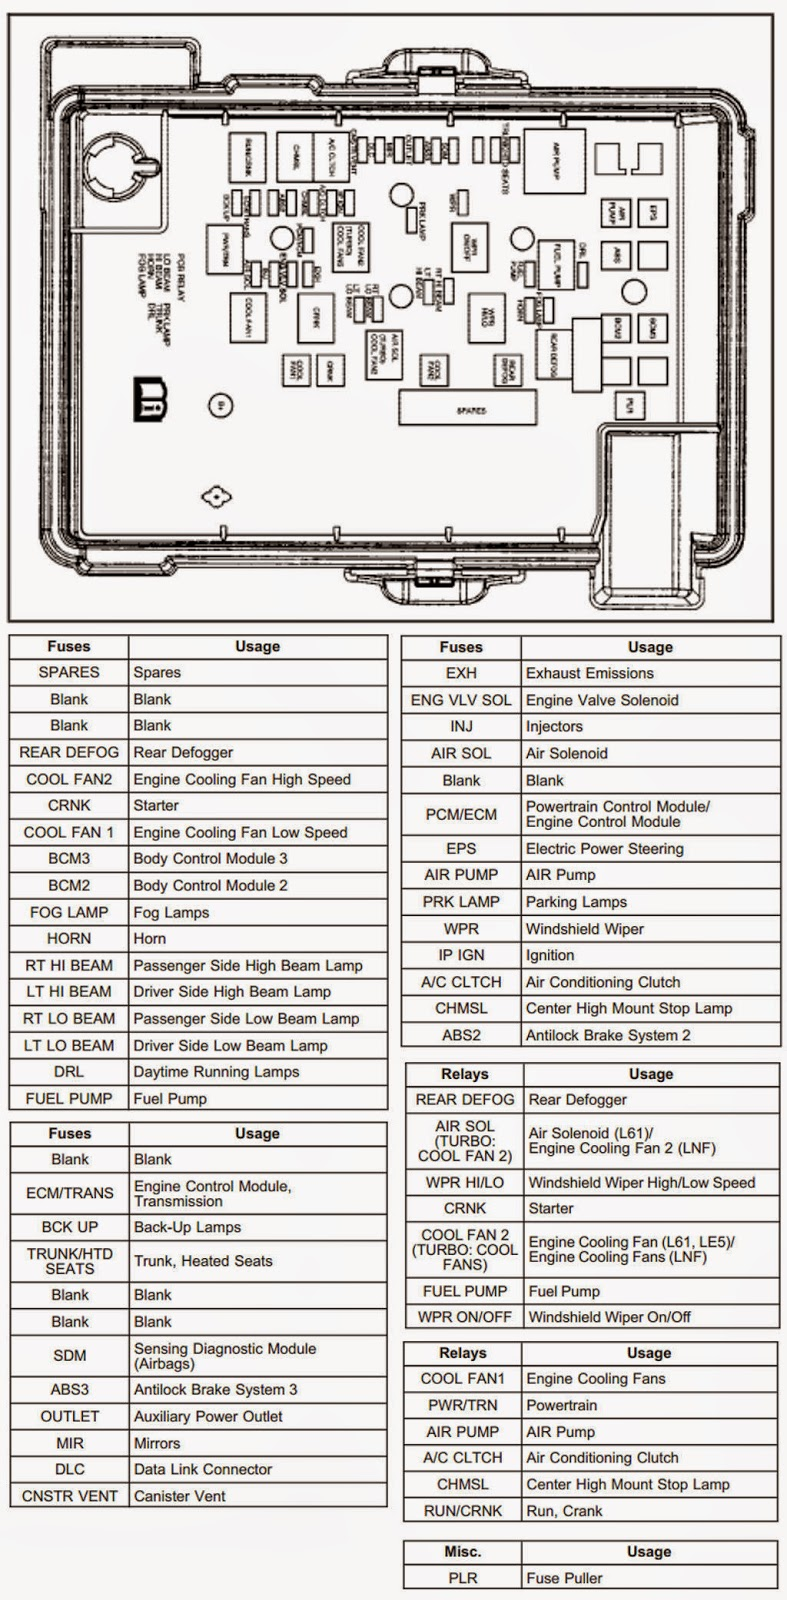 Wiring Diagram 12 2007 Chevy Cobalt Stereo Wiring Diagram Manual Guide